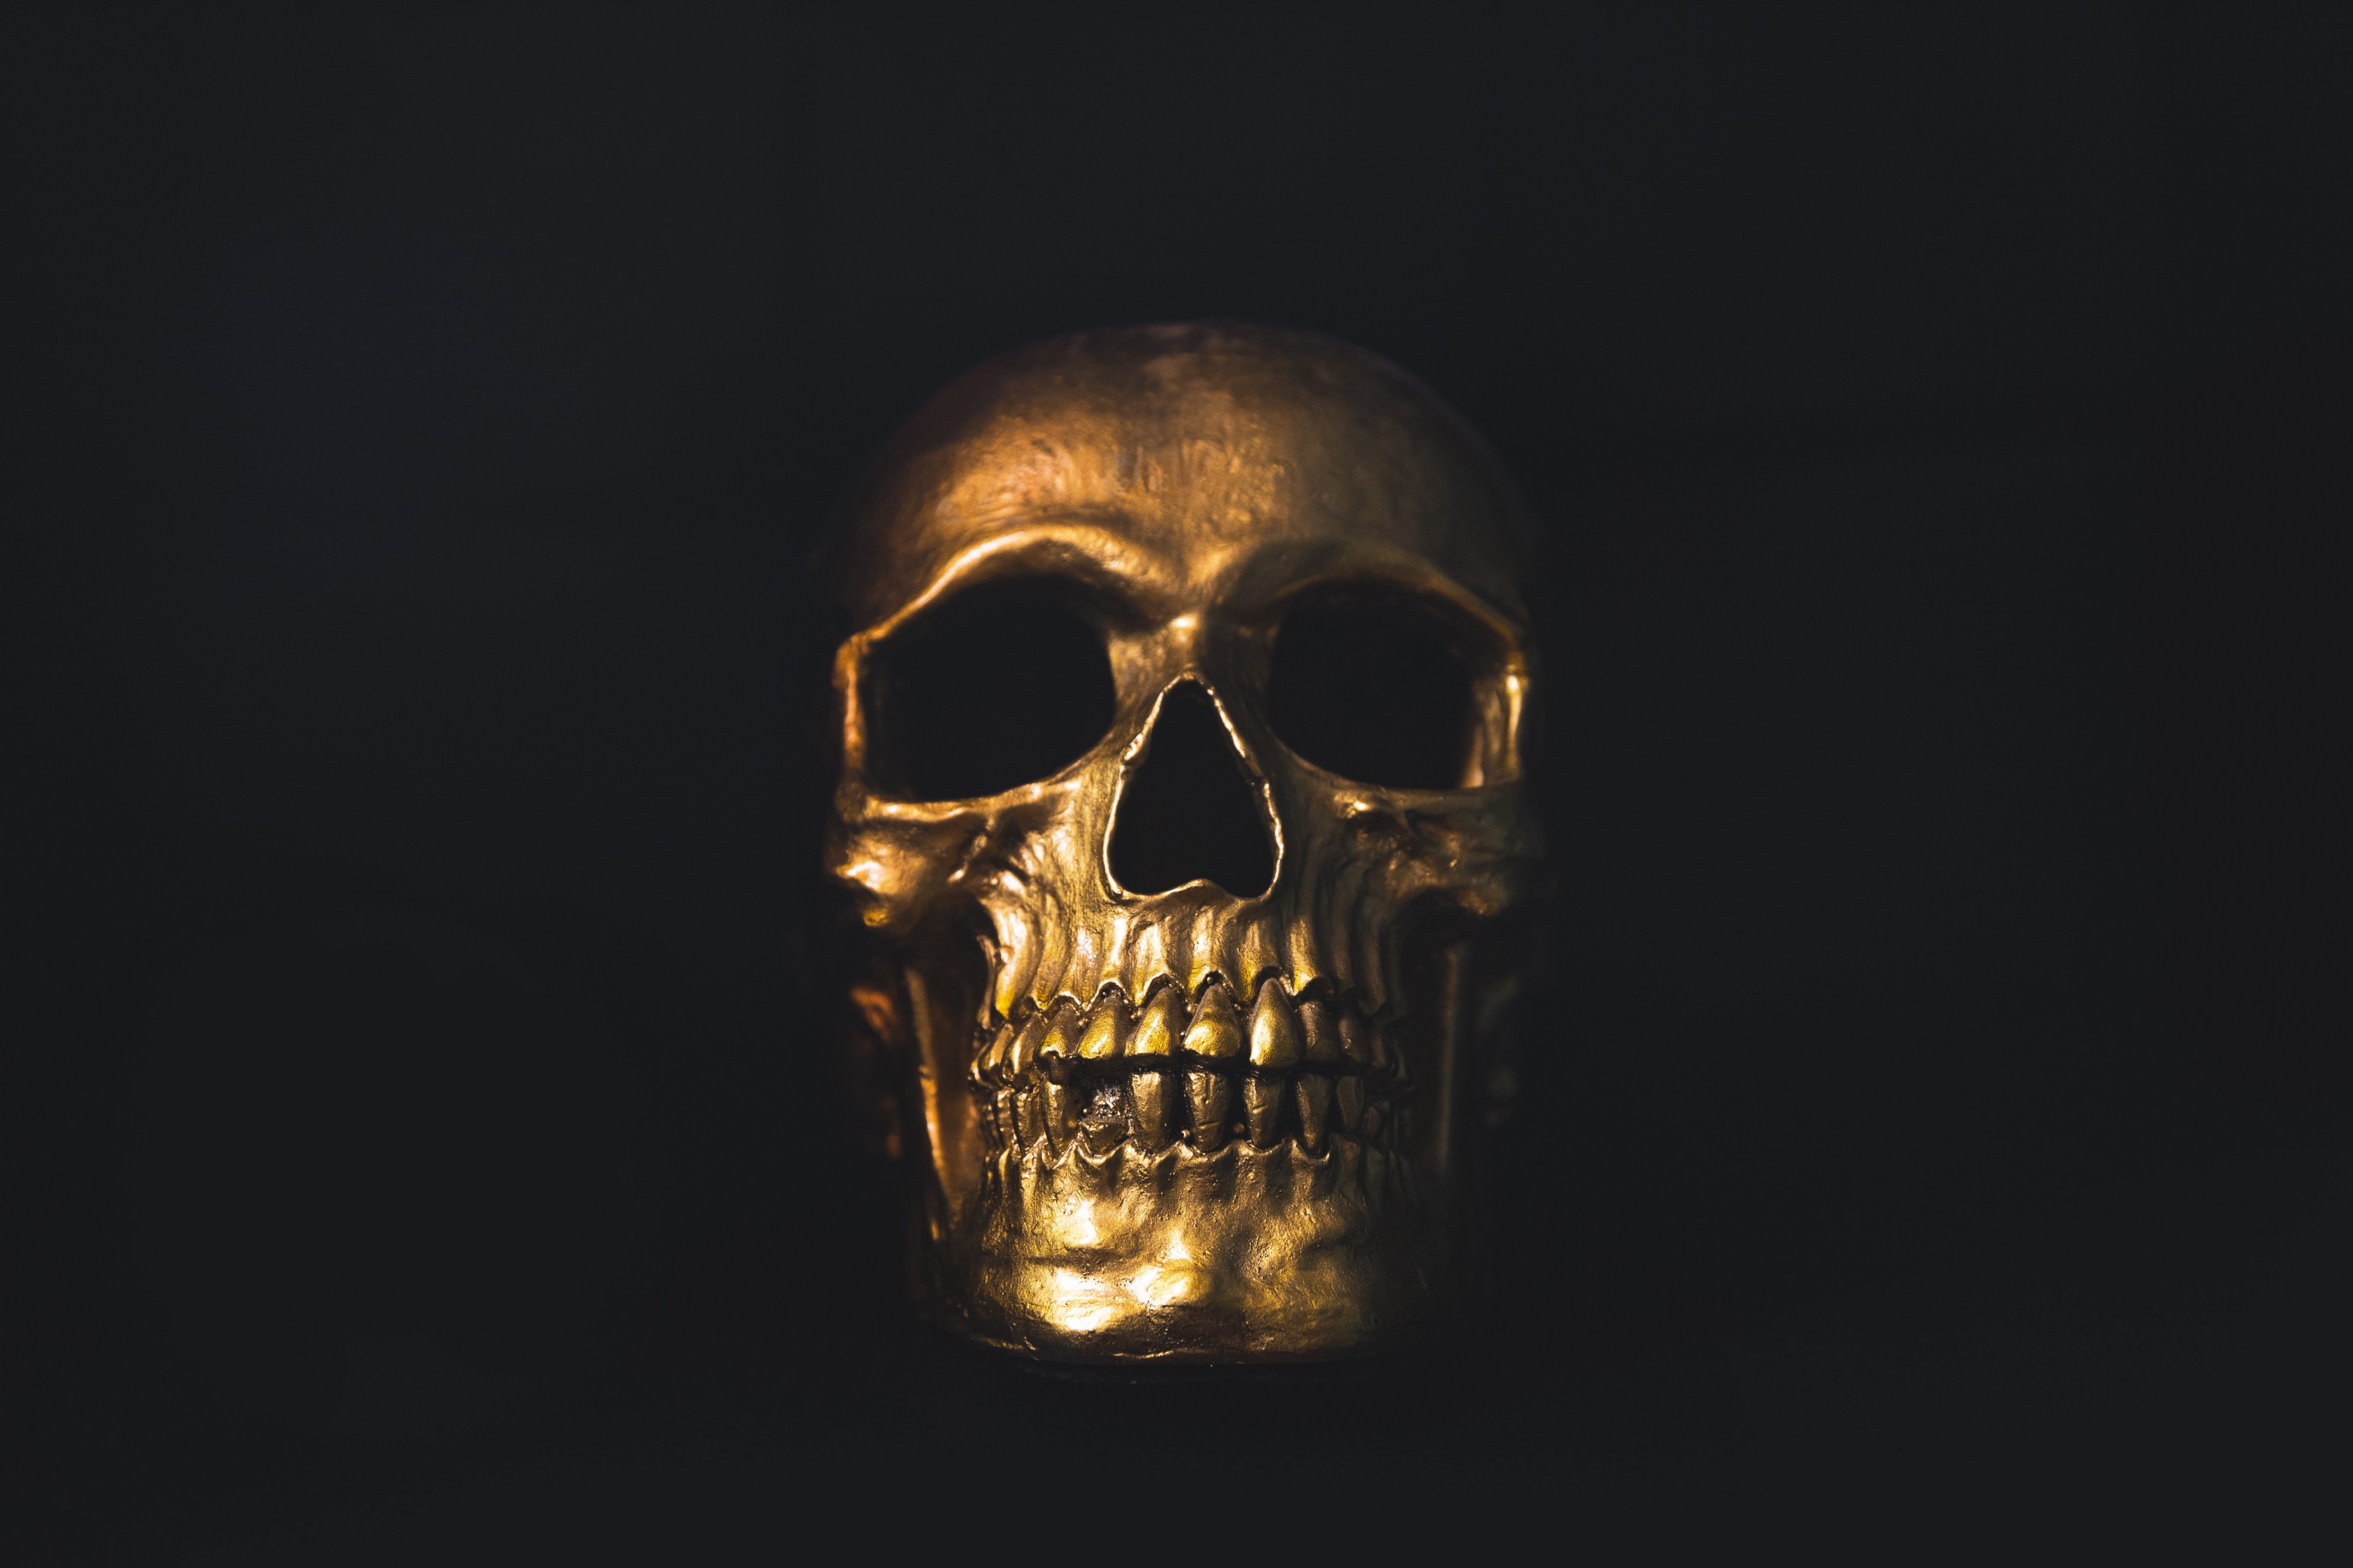 A golden skull shining against a dark background — read to the end of the piece and it will all become clear!